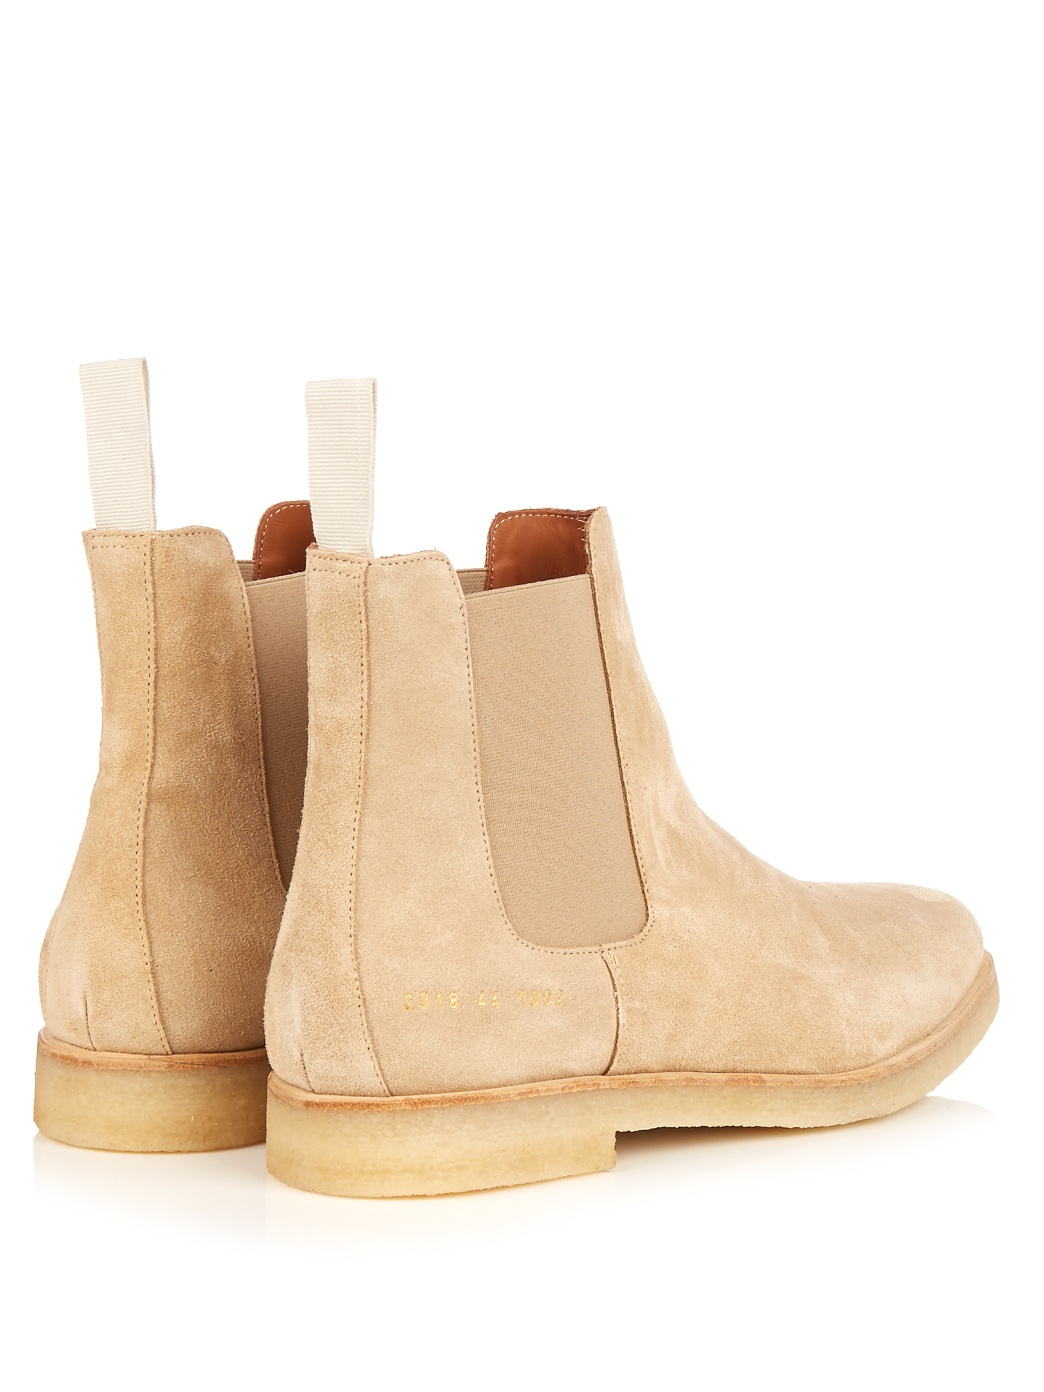 Common Projects Suede Chelsea Boots 4.jpg